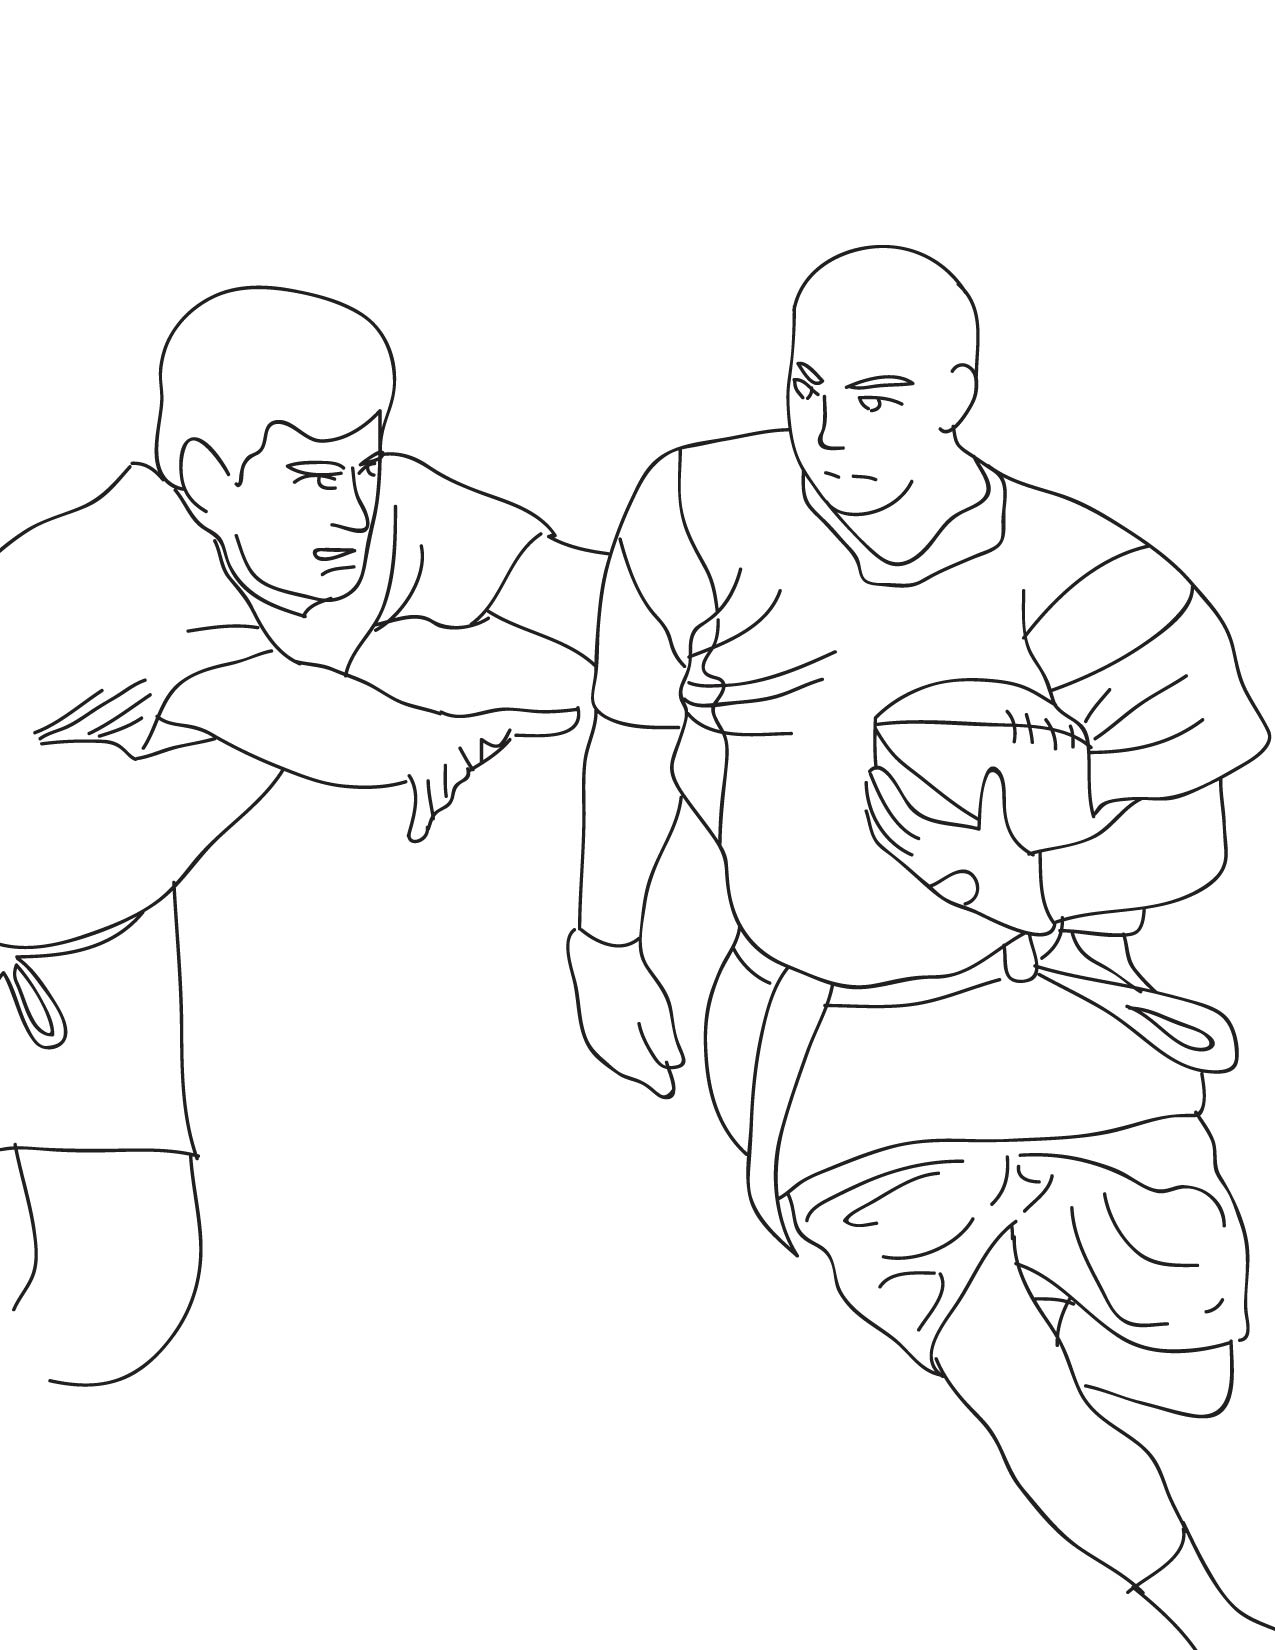 soccer flags coloring pages - photo#2